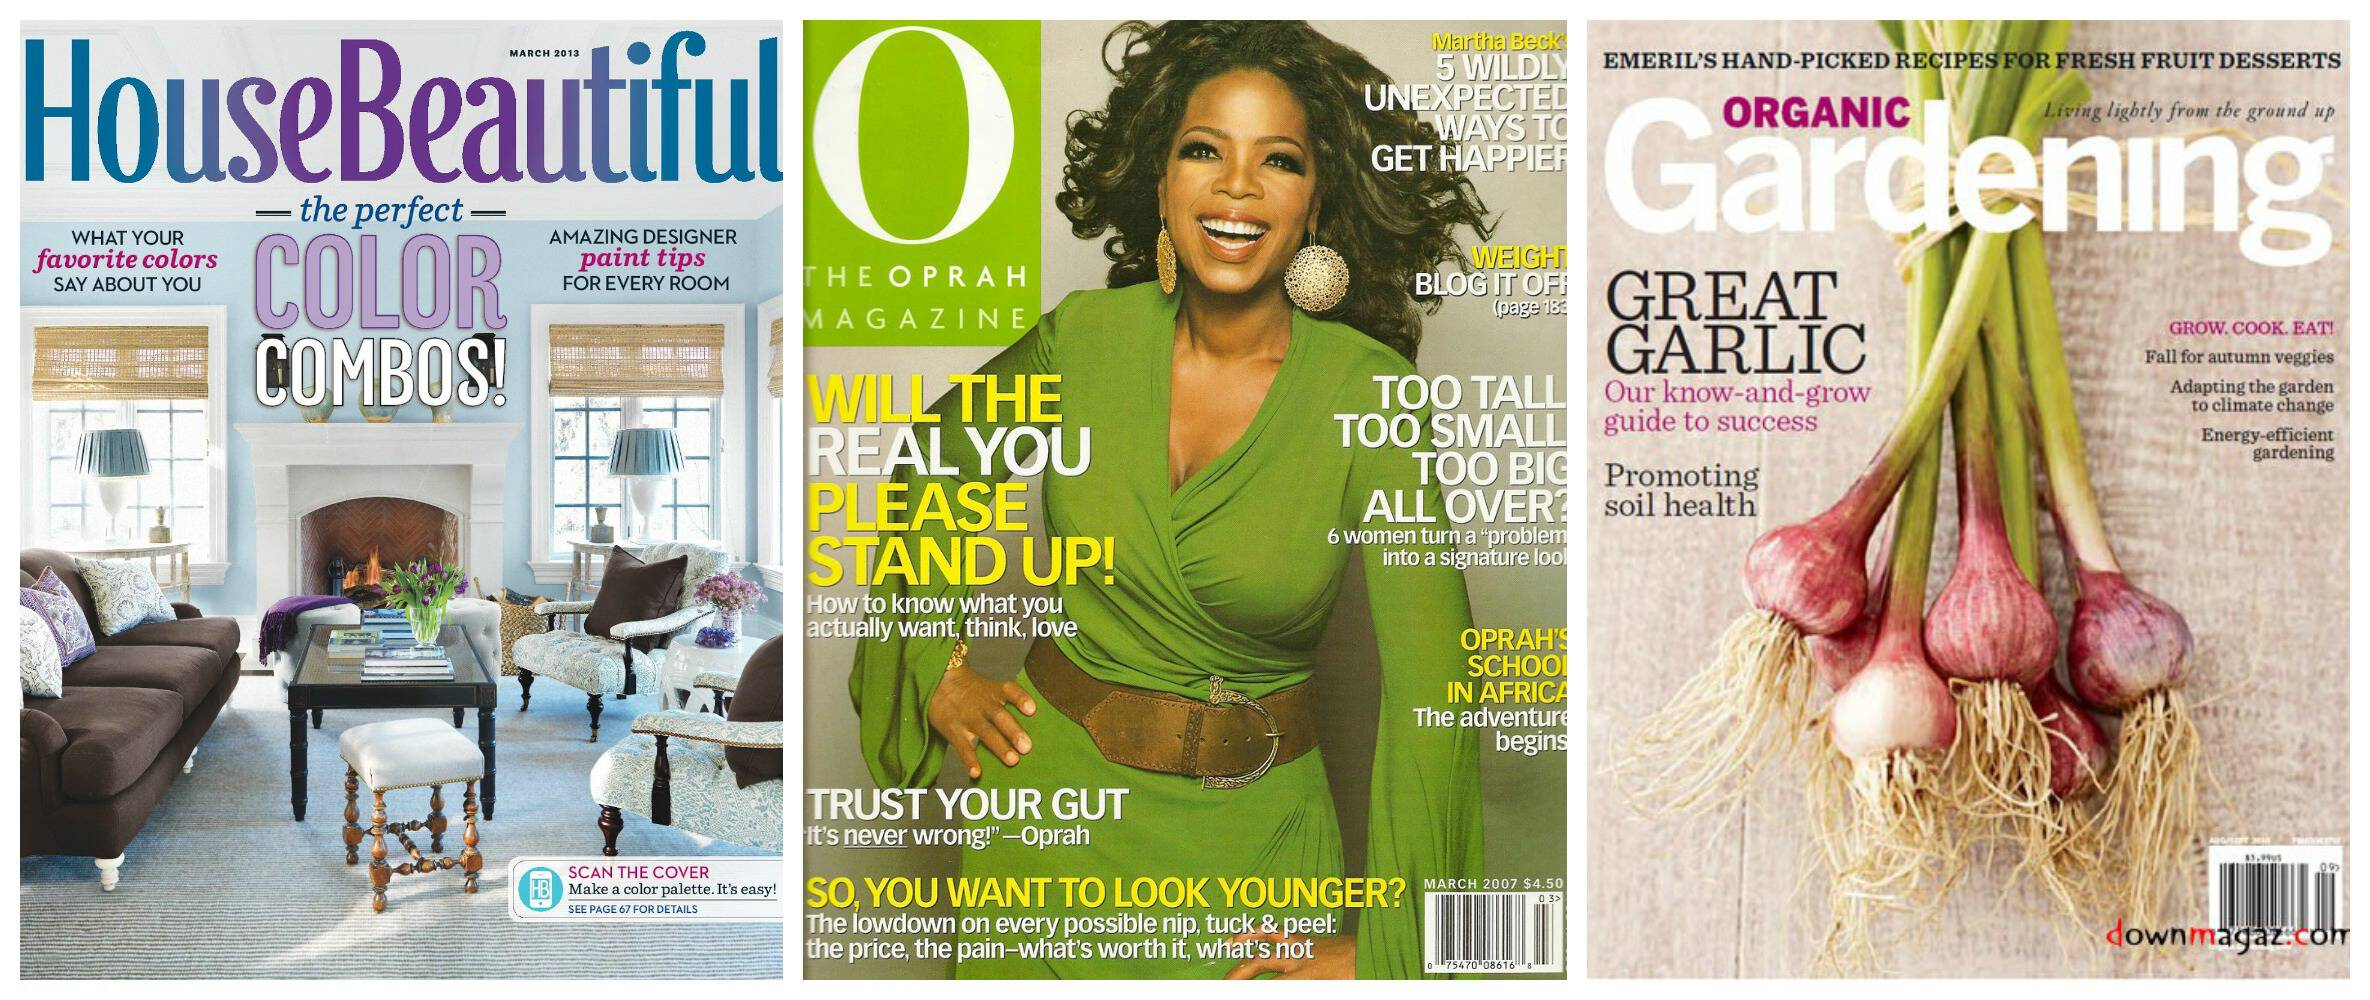 Groundhog Day Magazine Sale